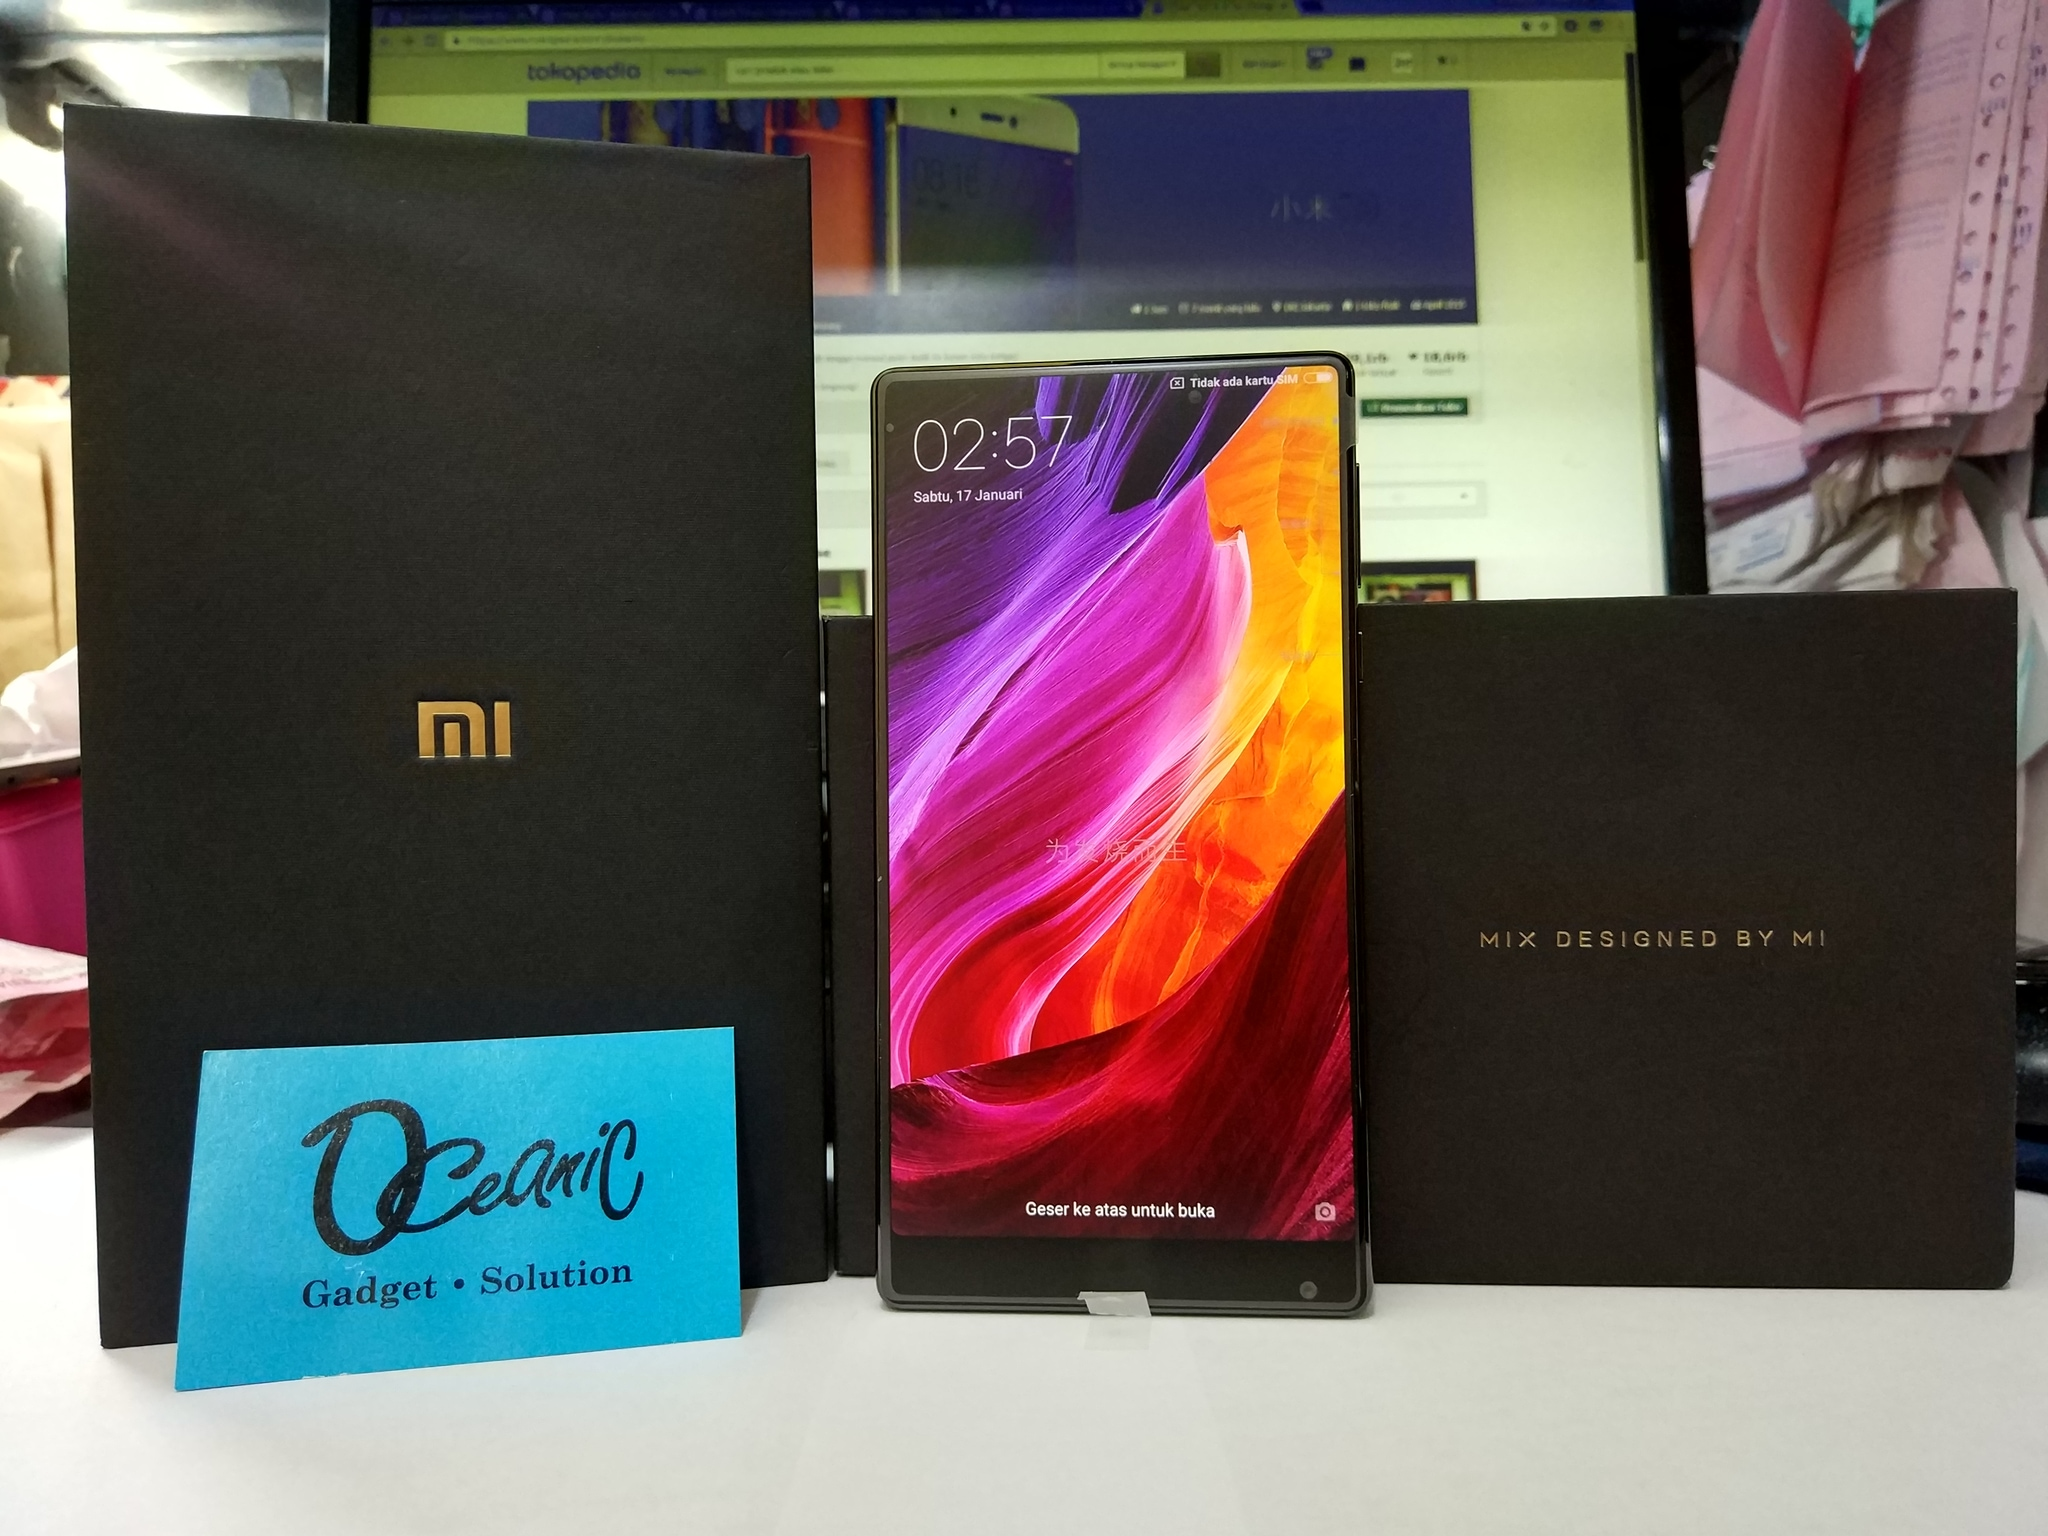 [NEW] Xiaomi Mi Mix RAM 6GB Internal 256GB Garansi Distributor 1 Thn!